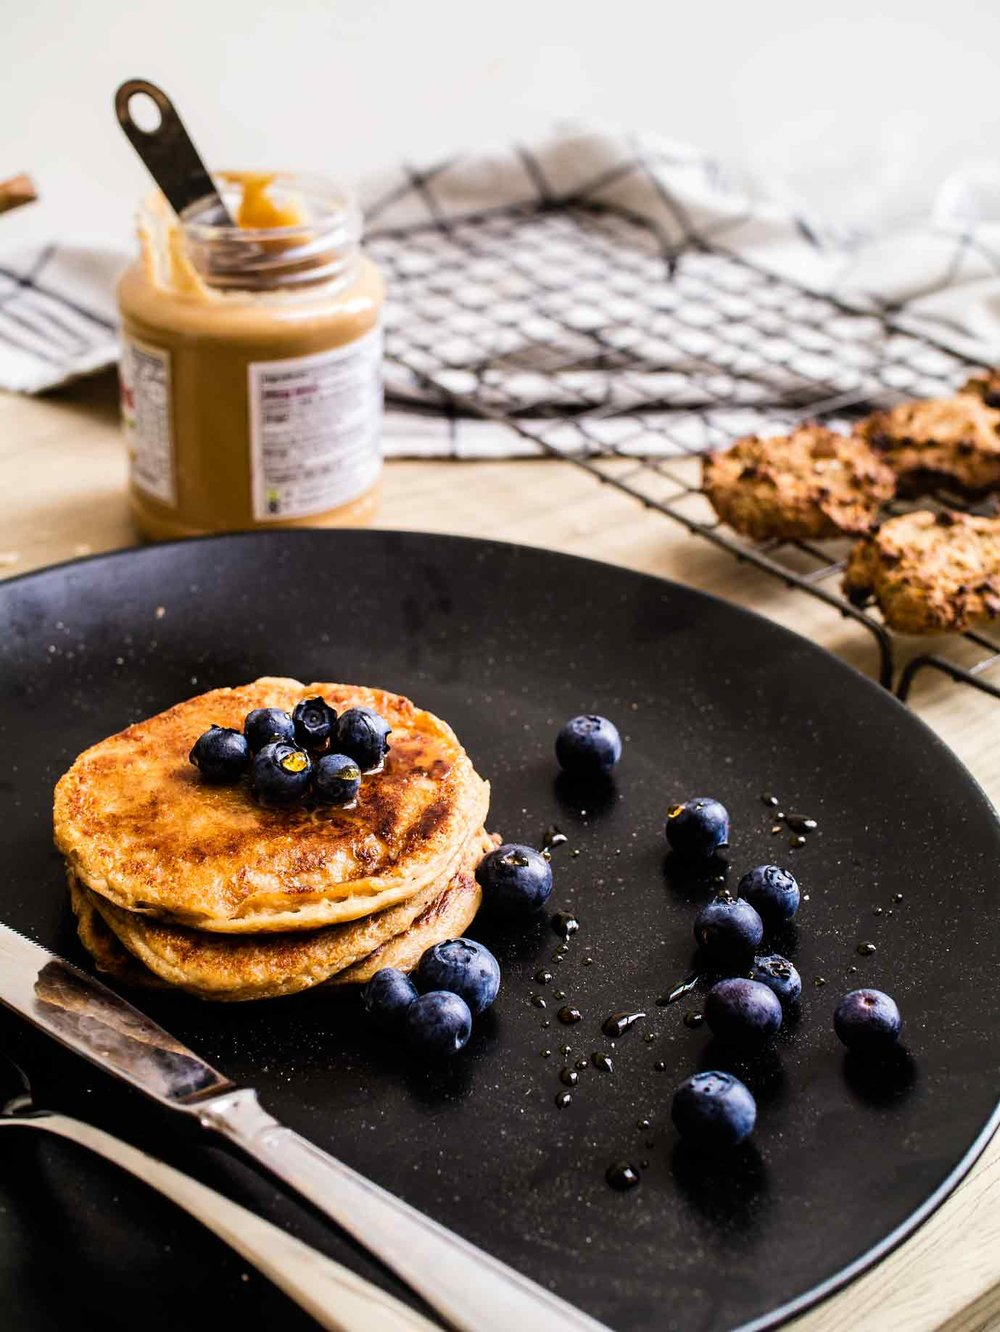 Peanut, oat, banana pancakes | 4 peanut butter recipes, 4 ingredients each! | www.discoverdelicious.org | vegan food blog